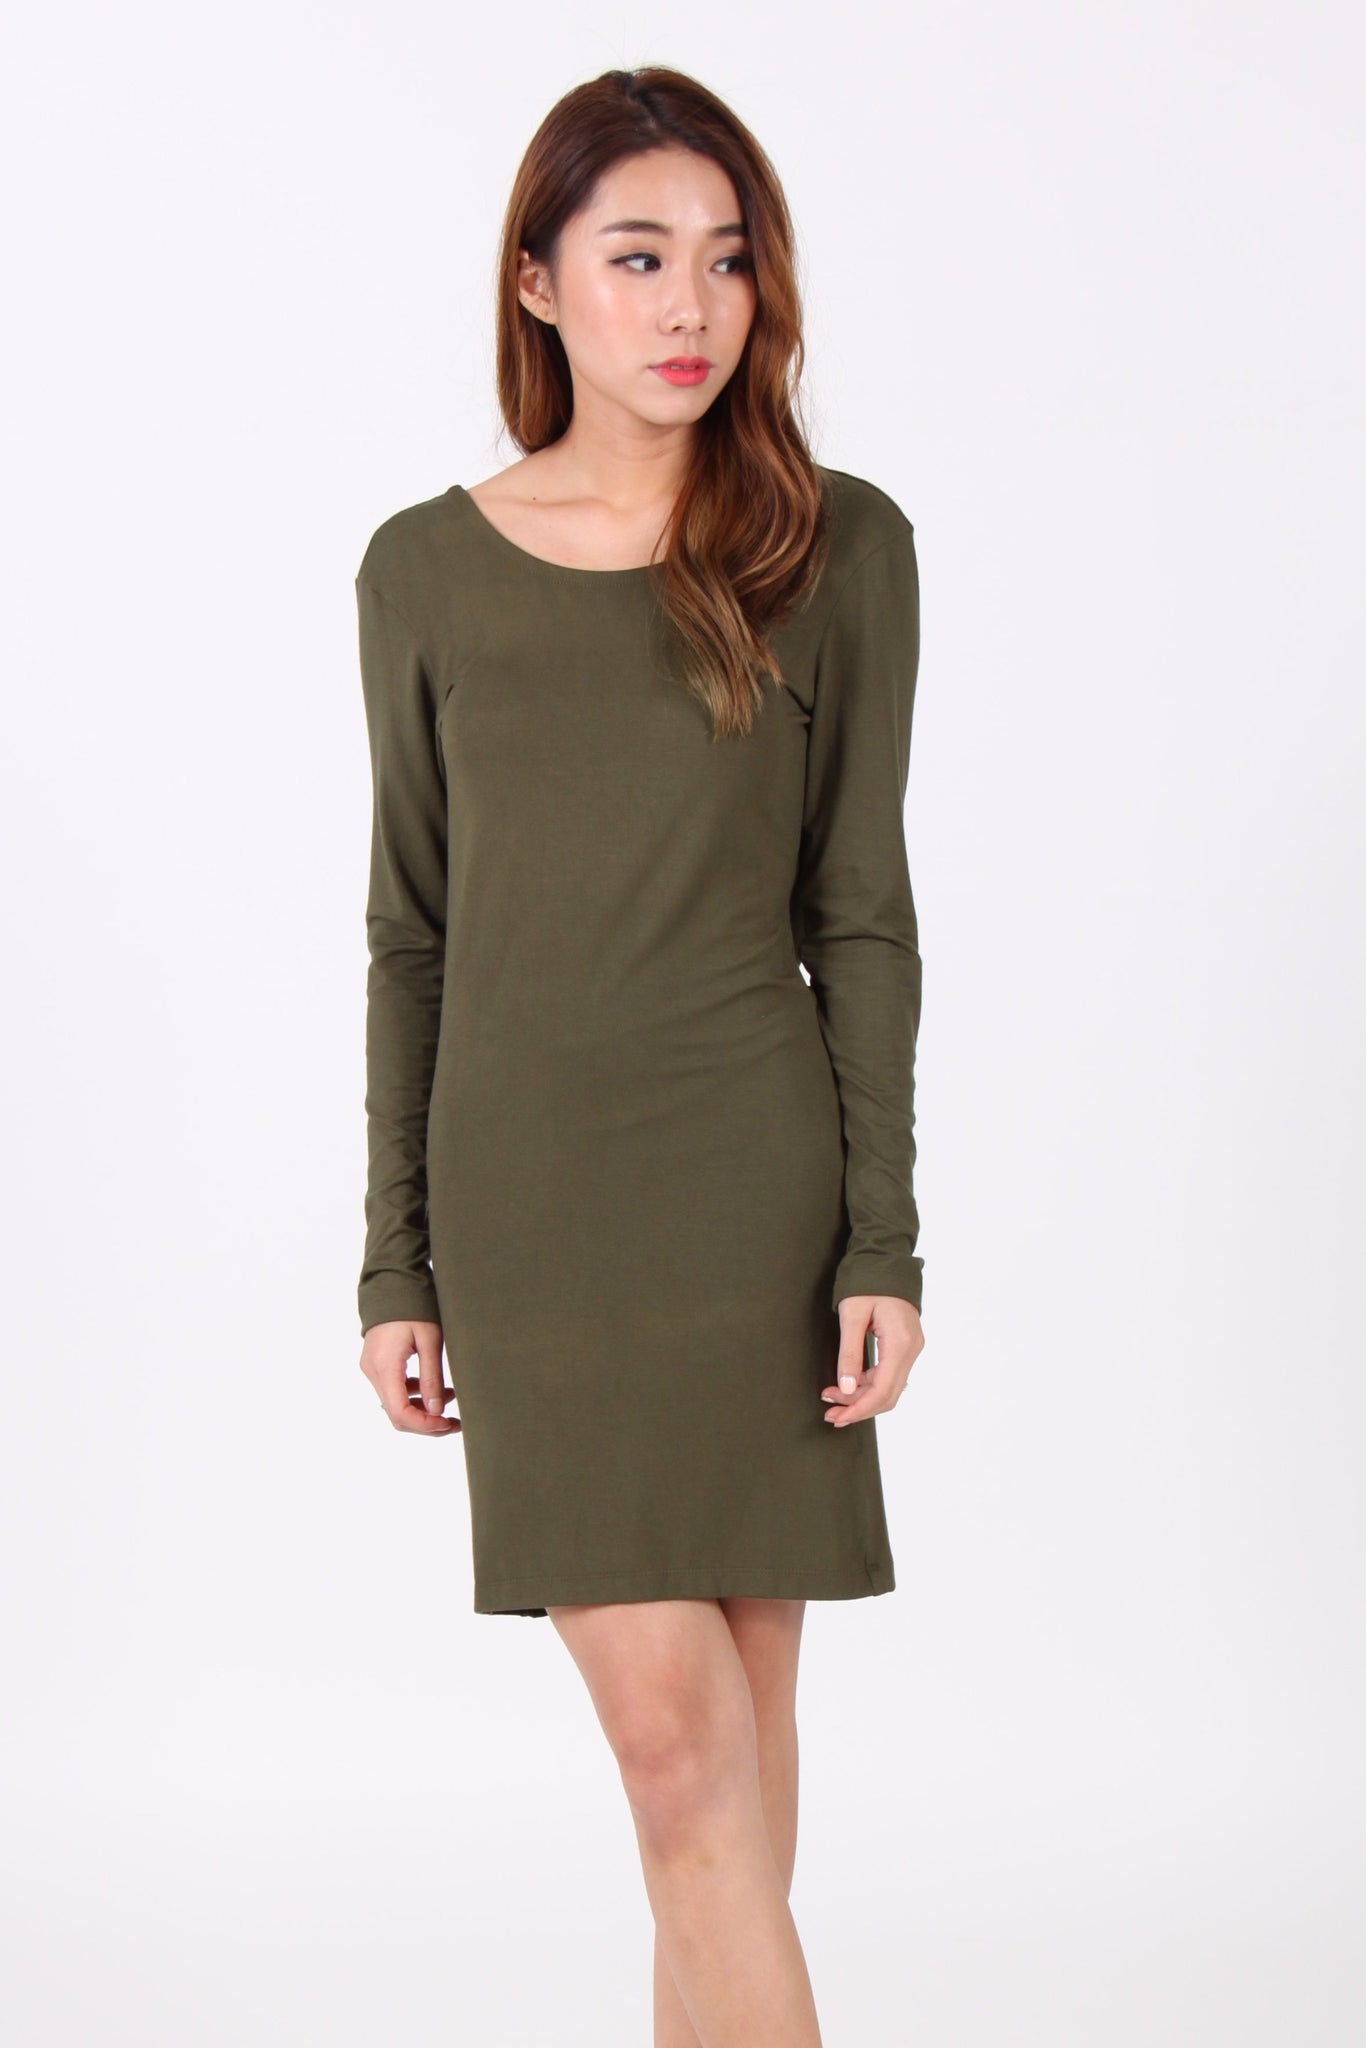 Drape Back Long Sleeve Dress in Olive